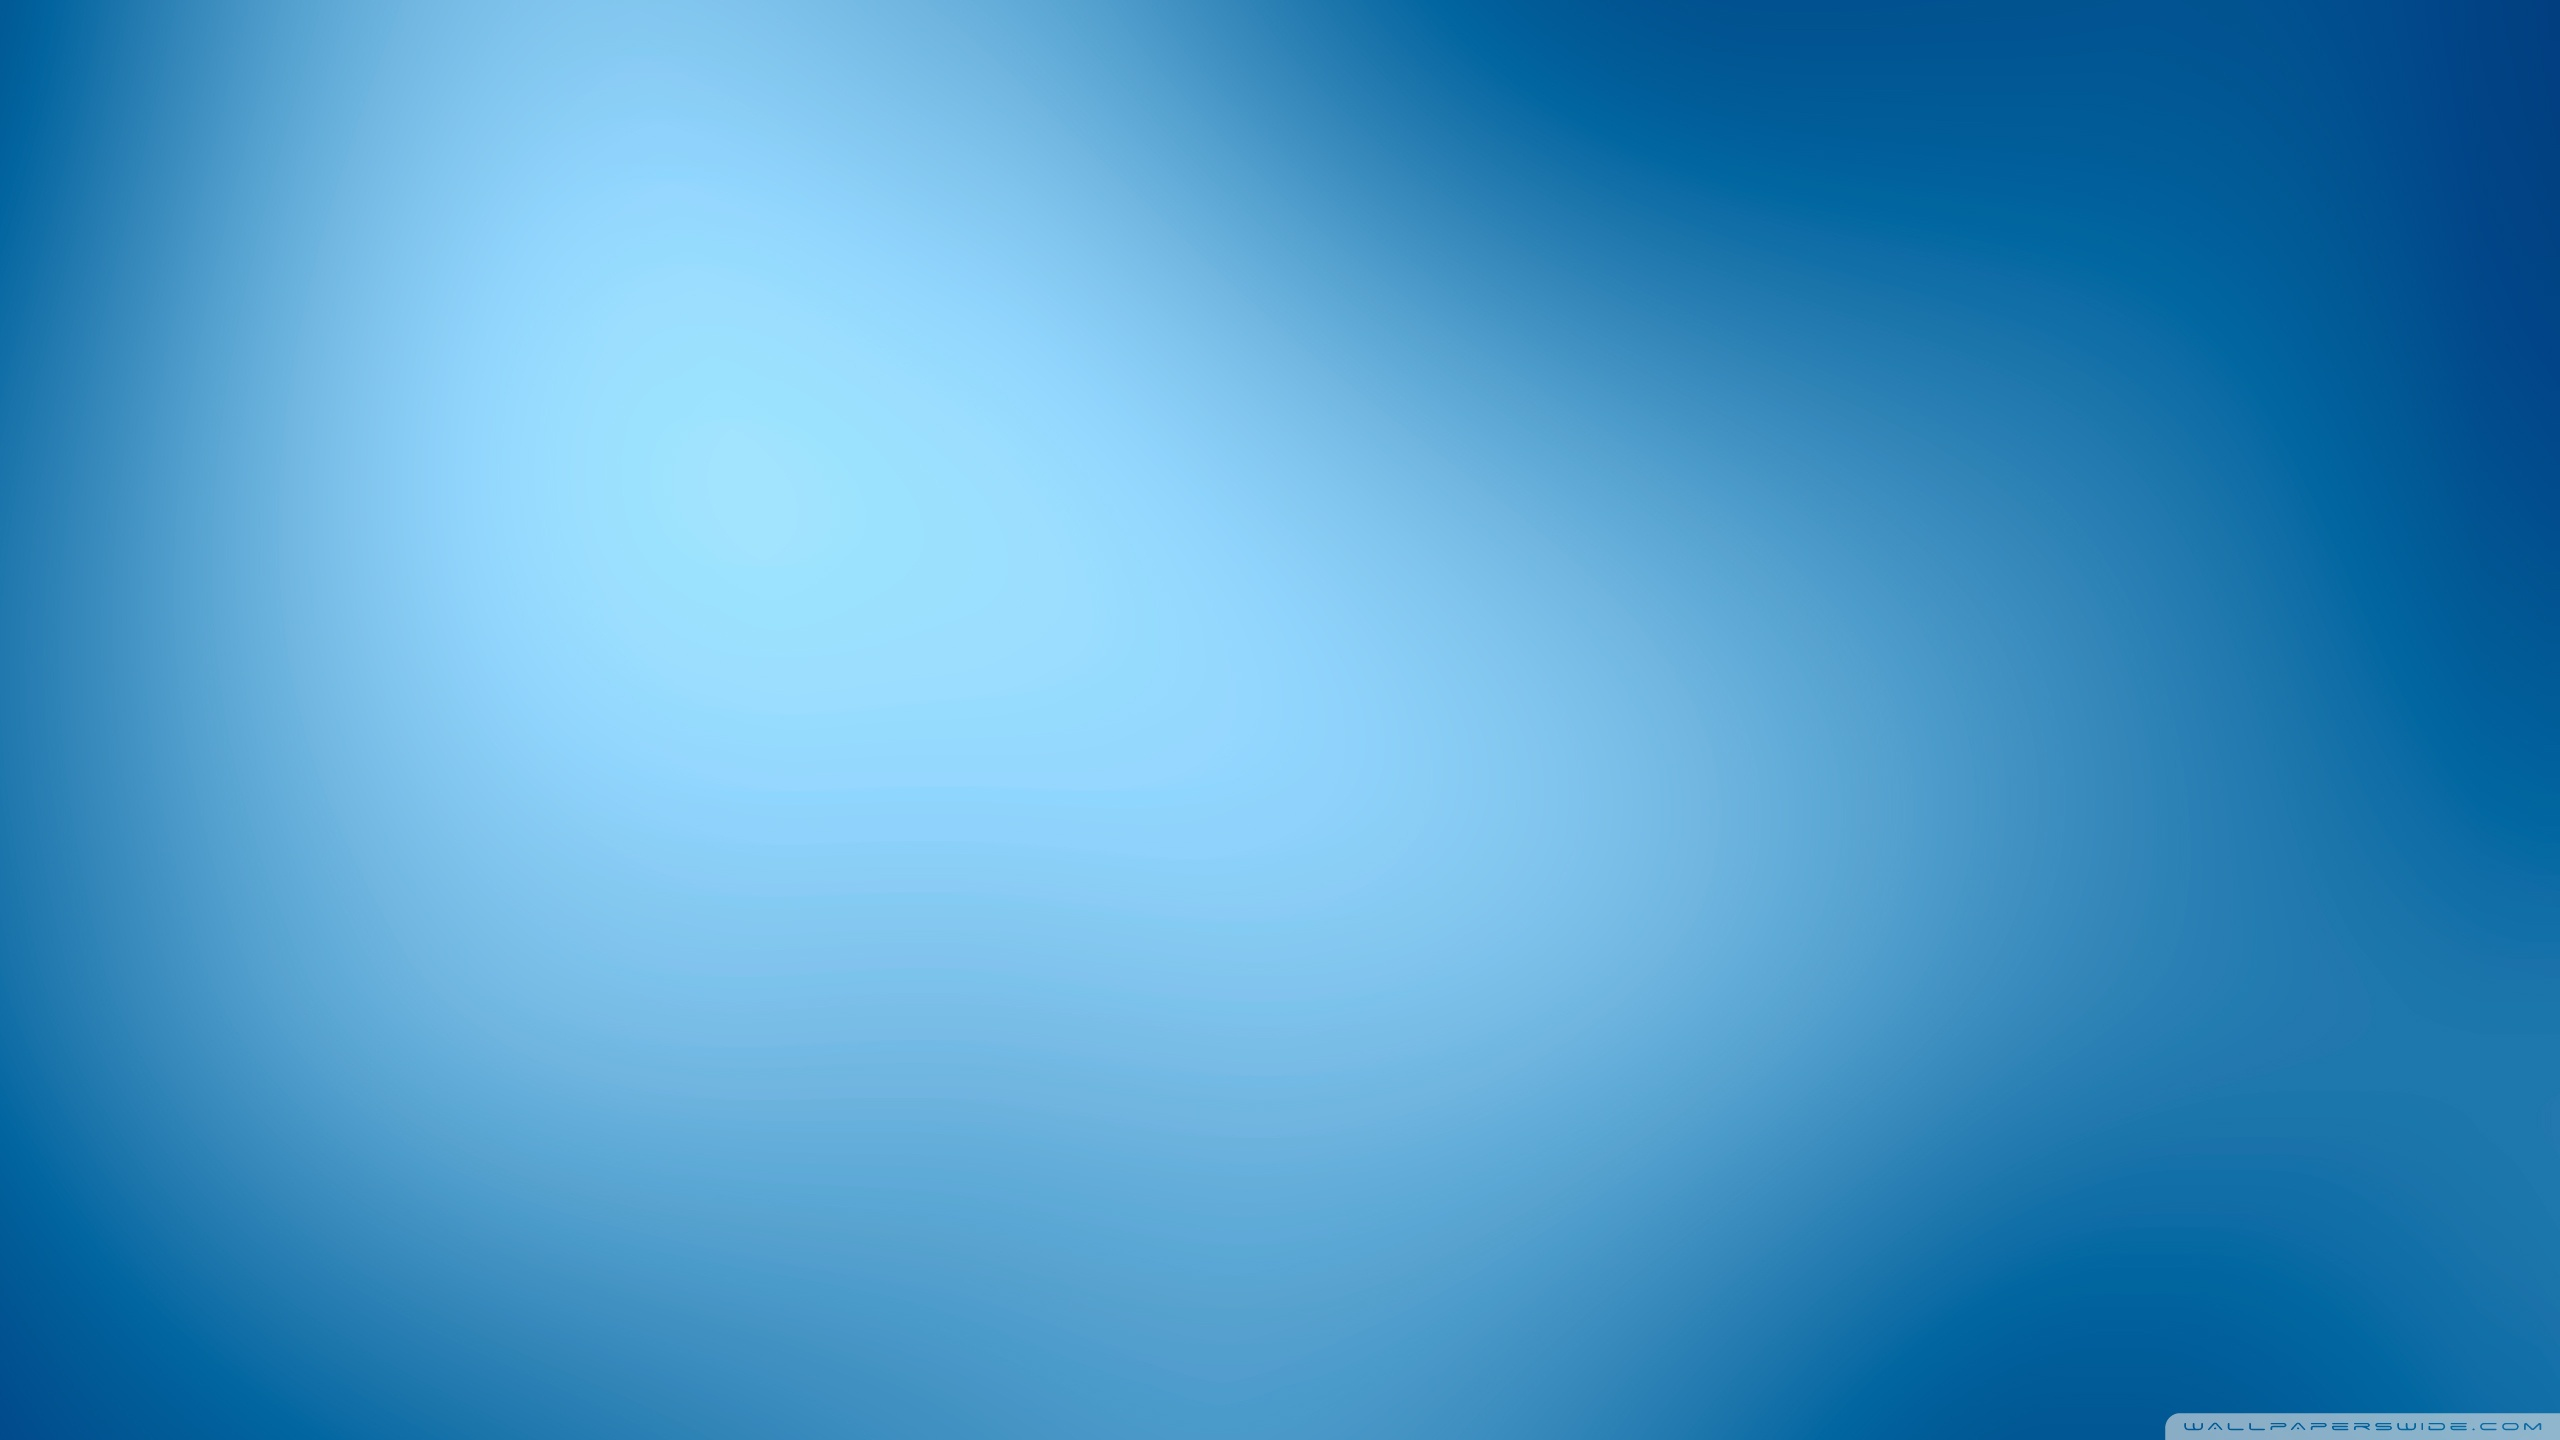 simple backgrounds wallpaper | 2560x1440 | #47279